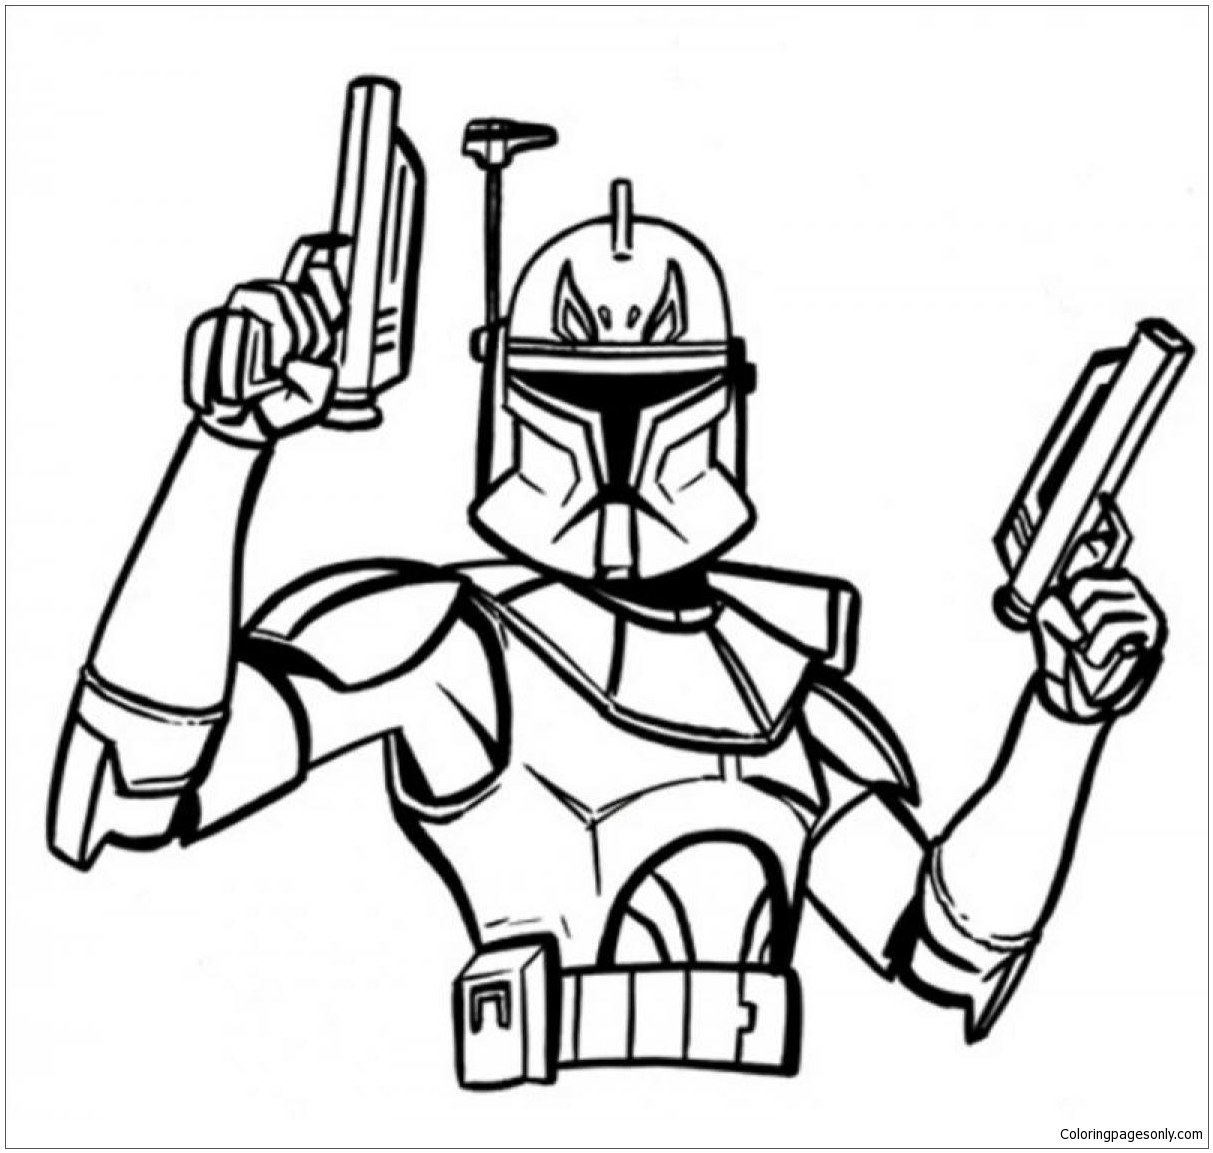 Captain Rex Star Wars Coloring Page Free Coloring Pages Online